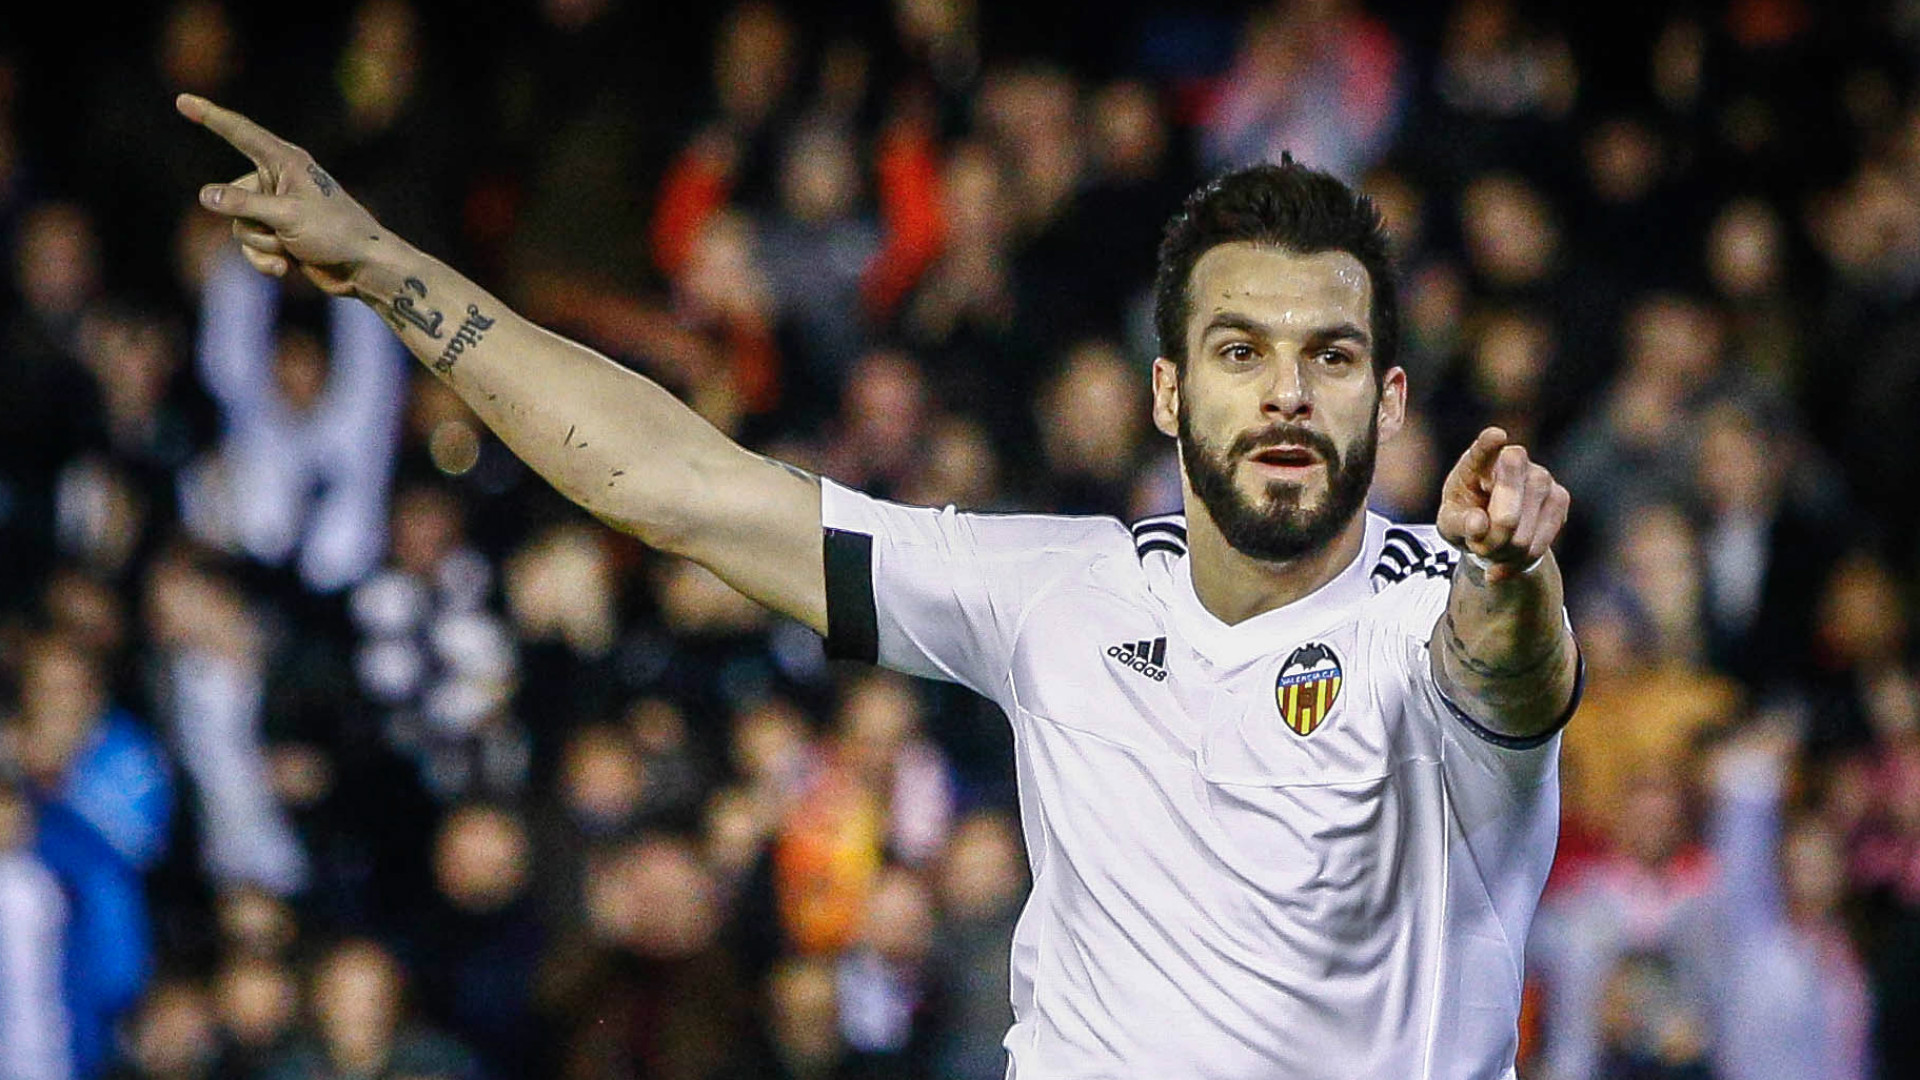 Video: Valencia vs Sevilla